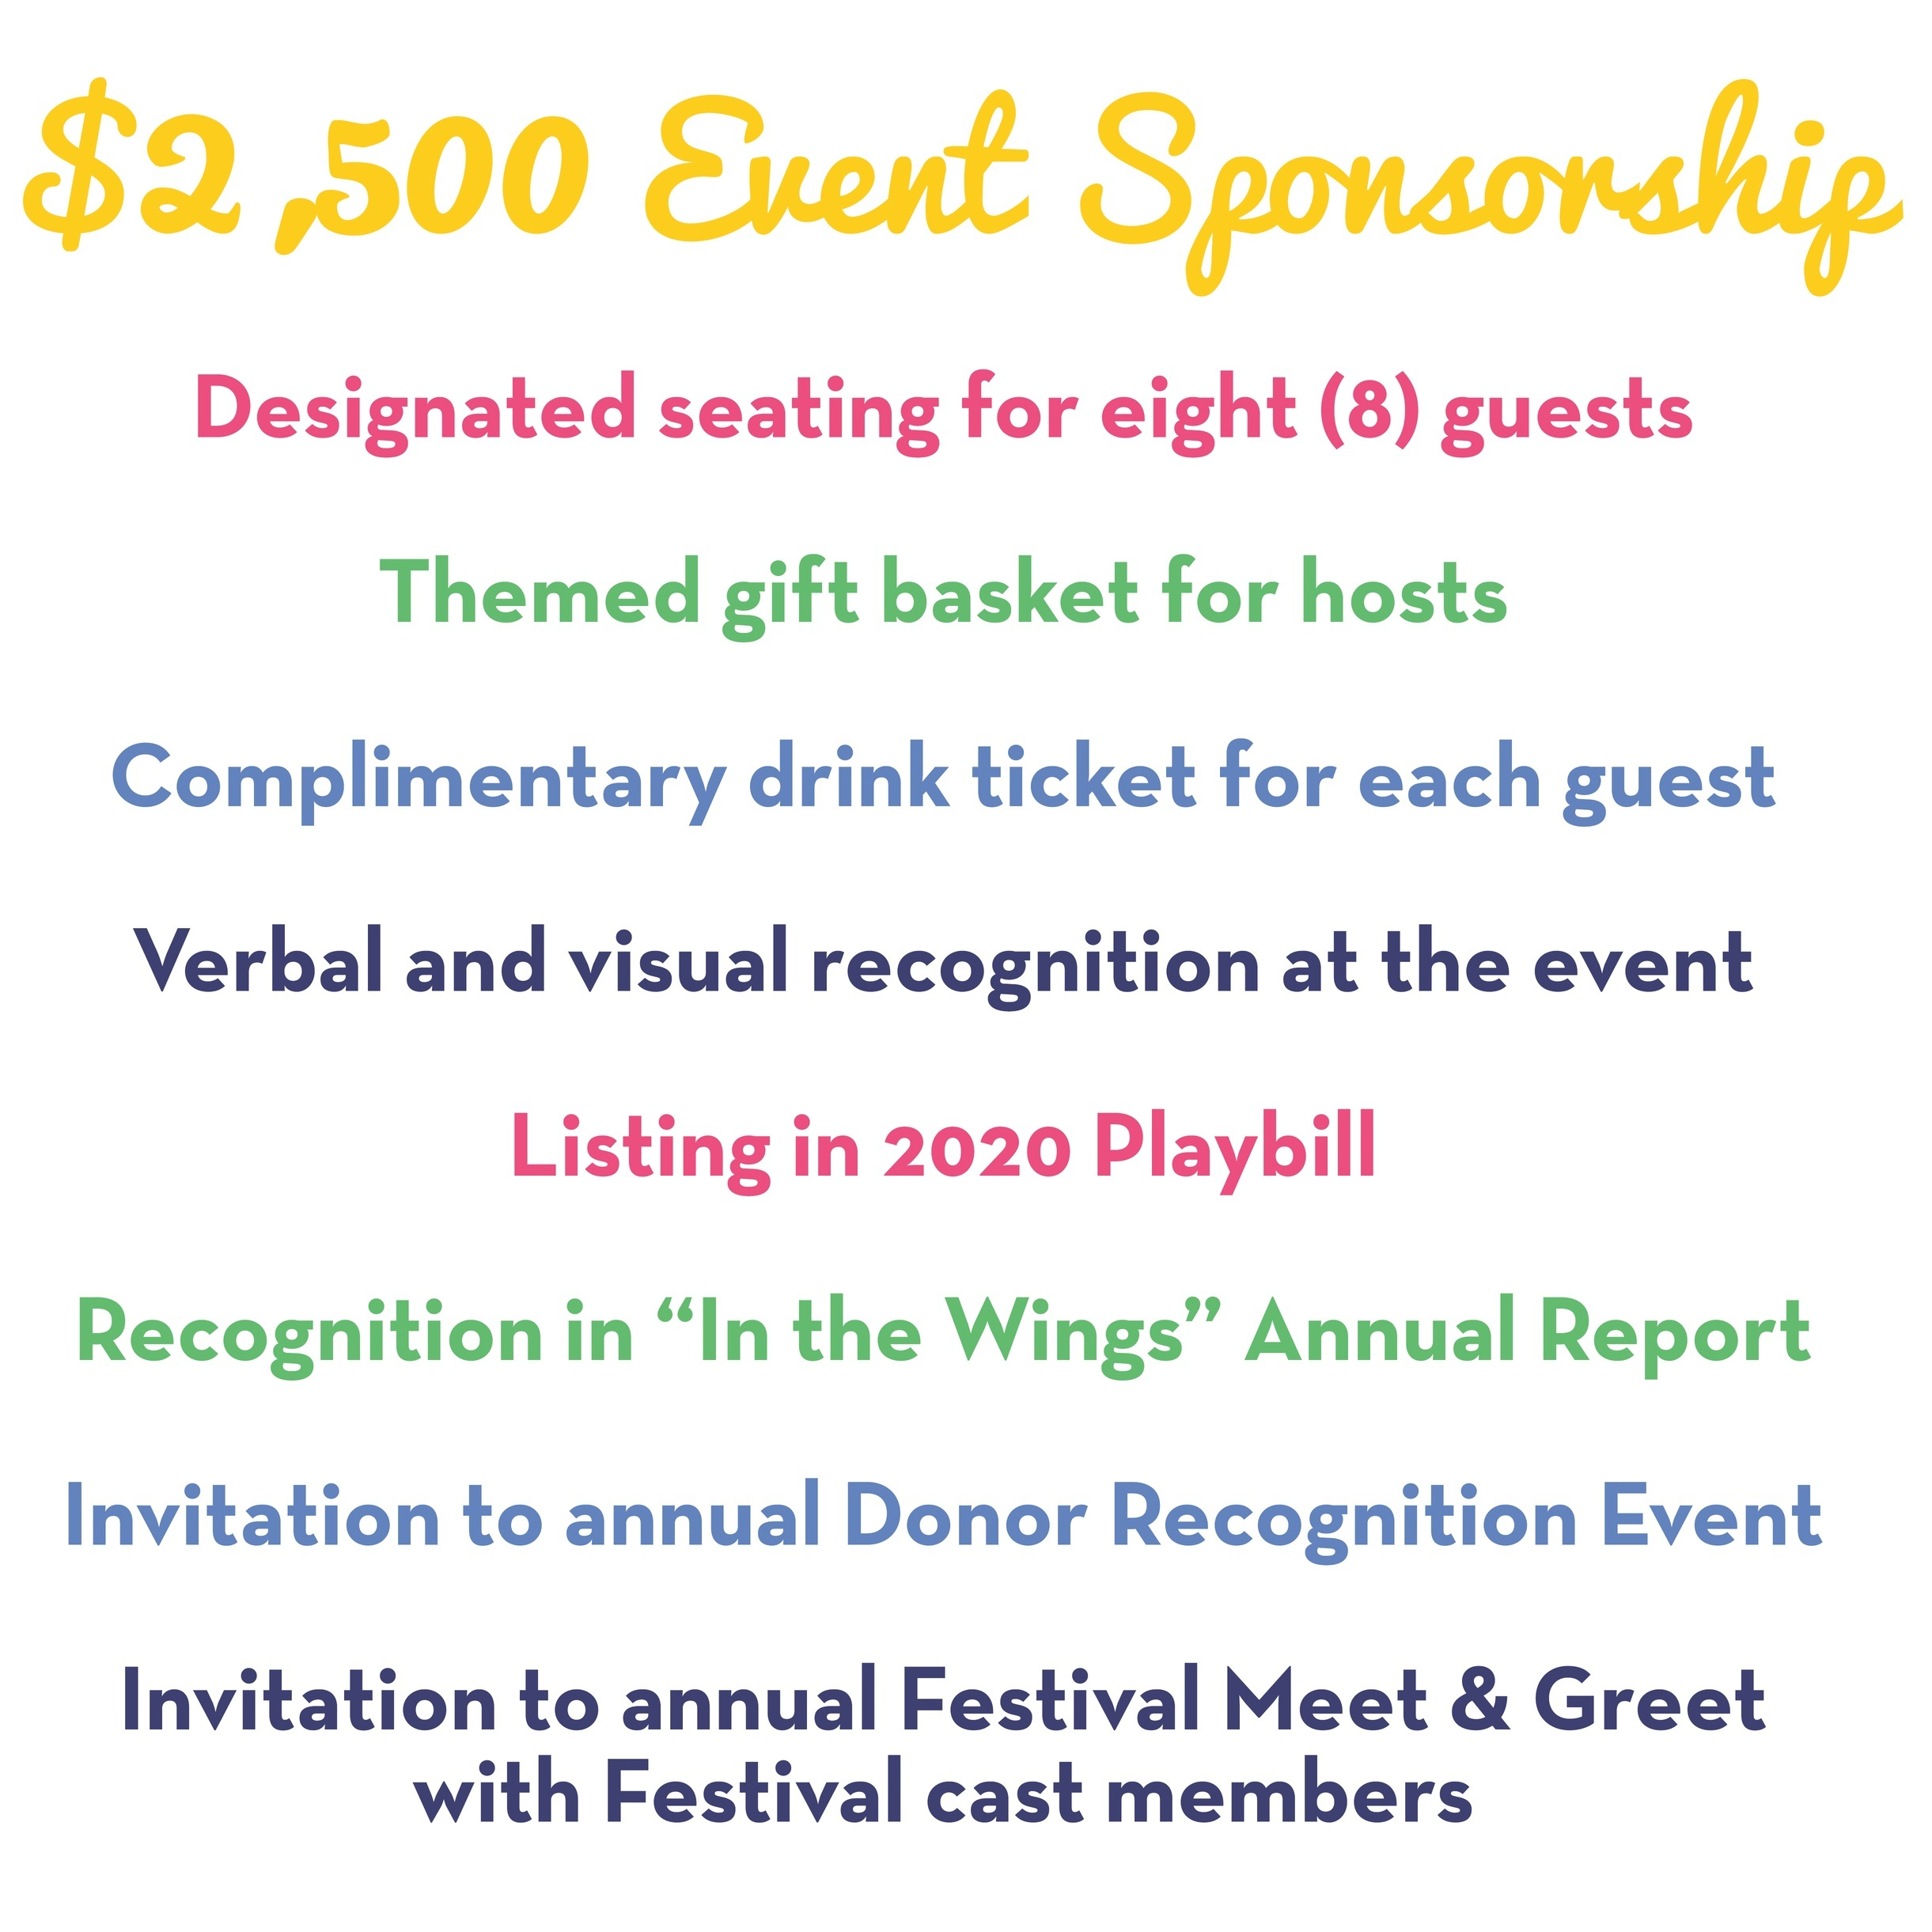 Interested in Sponsoring? Click here!